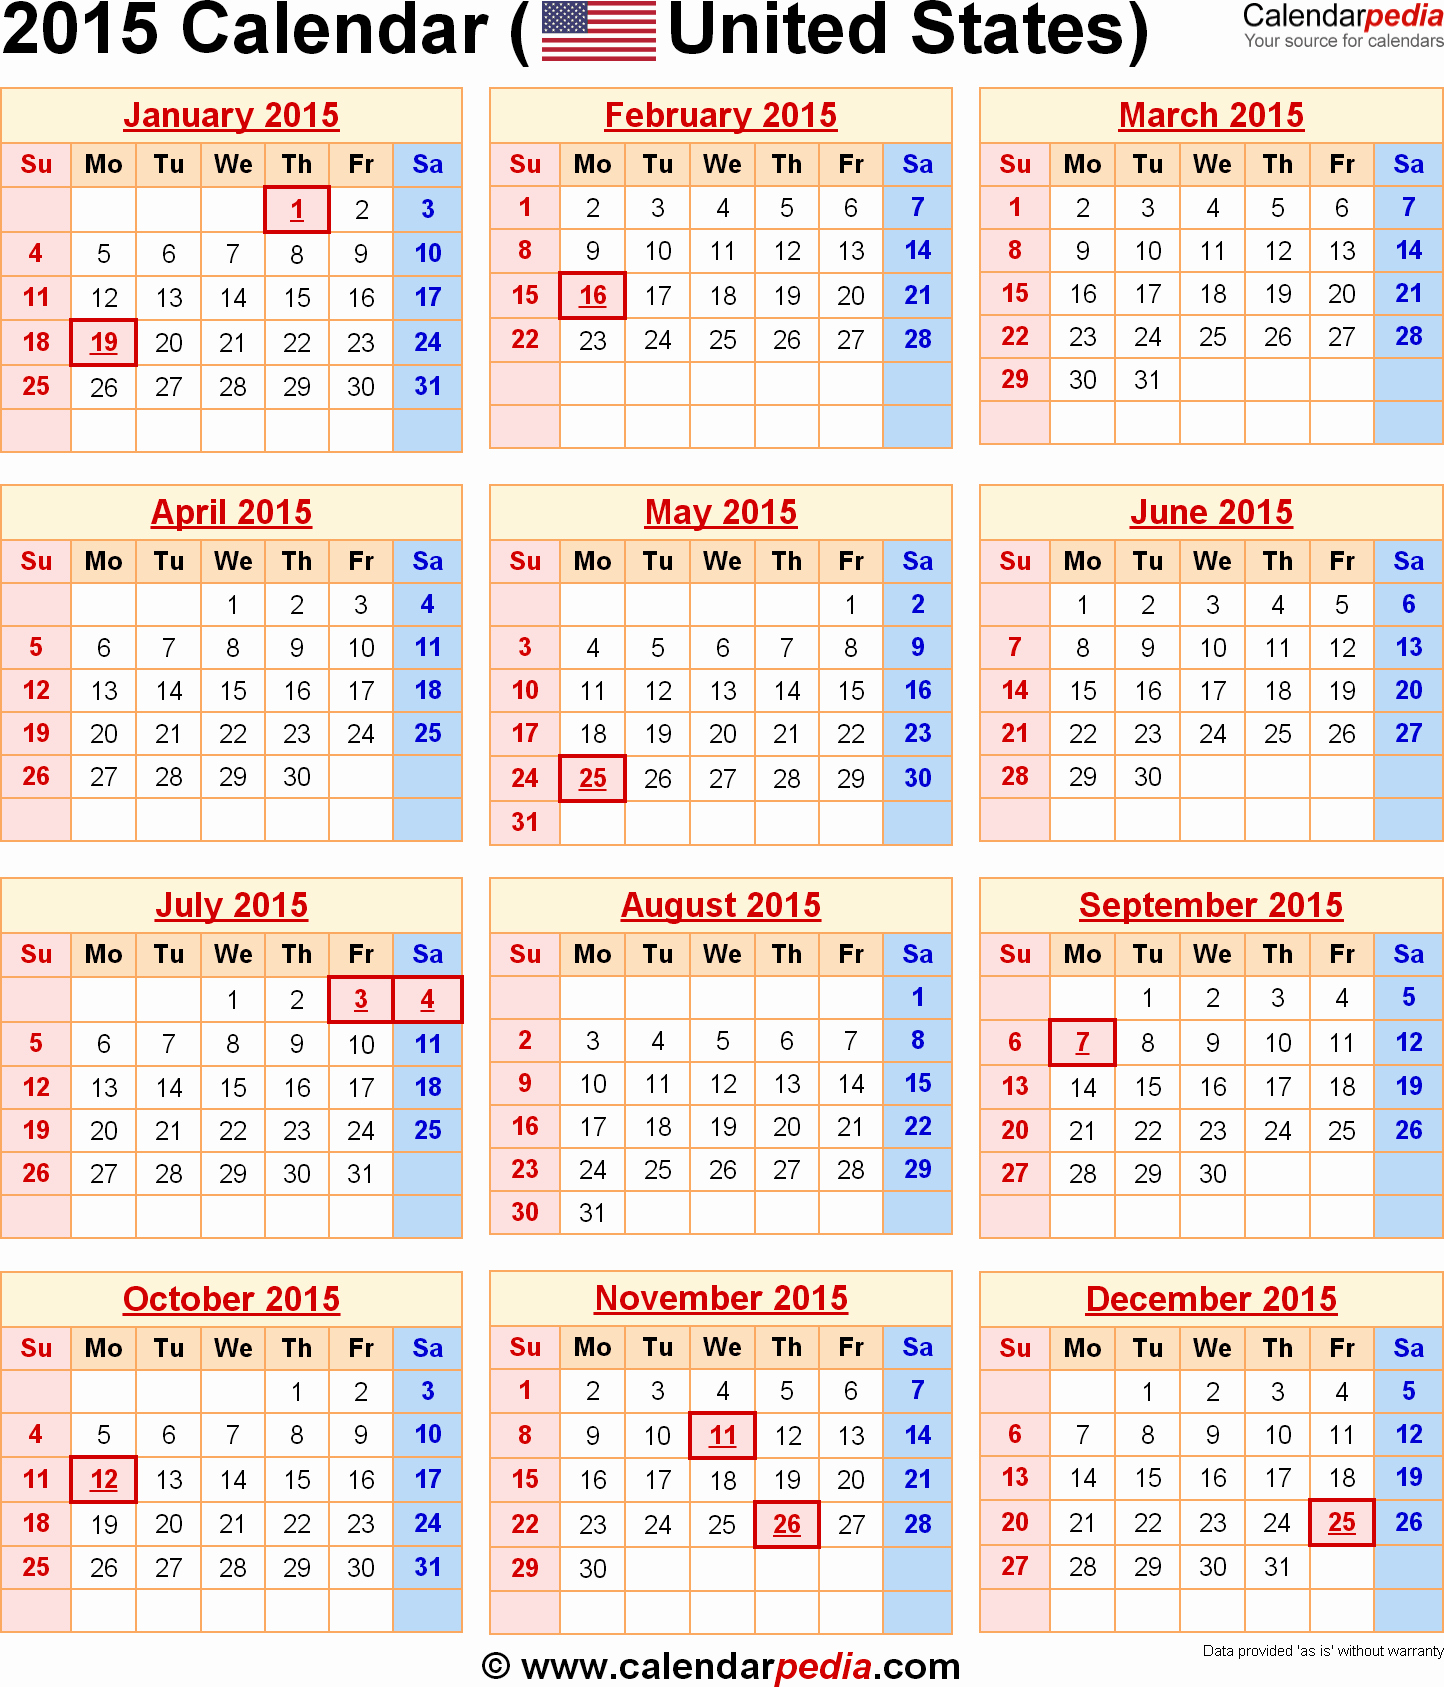 Calendar 2015 Printable with Holidays Beautiful 2015 Calendar with Federal Holidays & Excel Pdf Word Templates